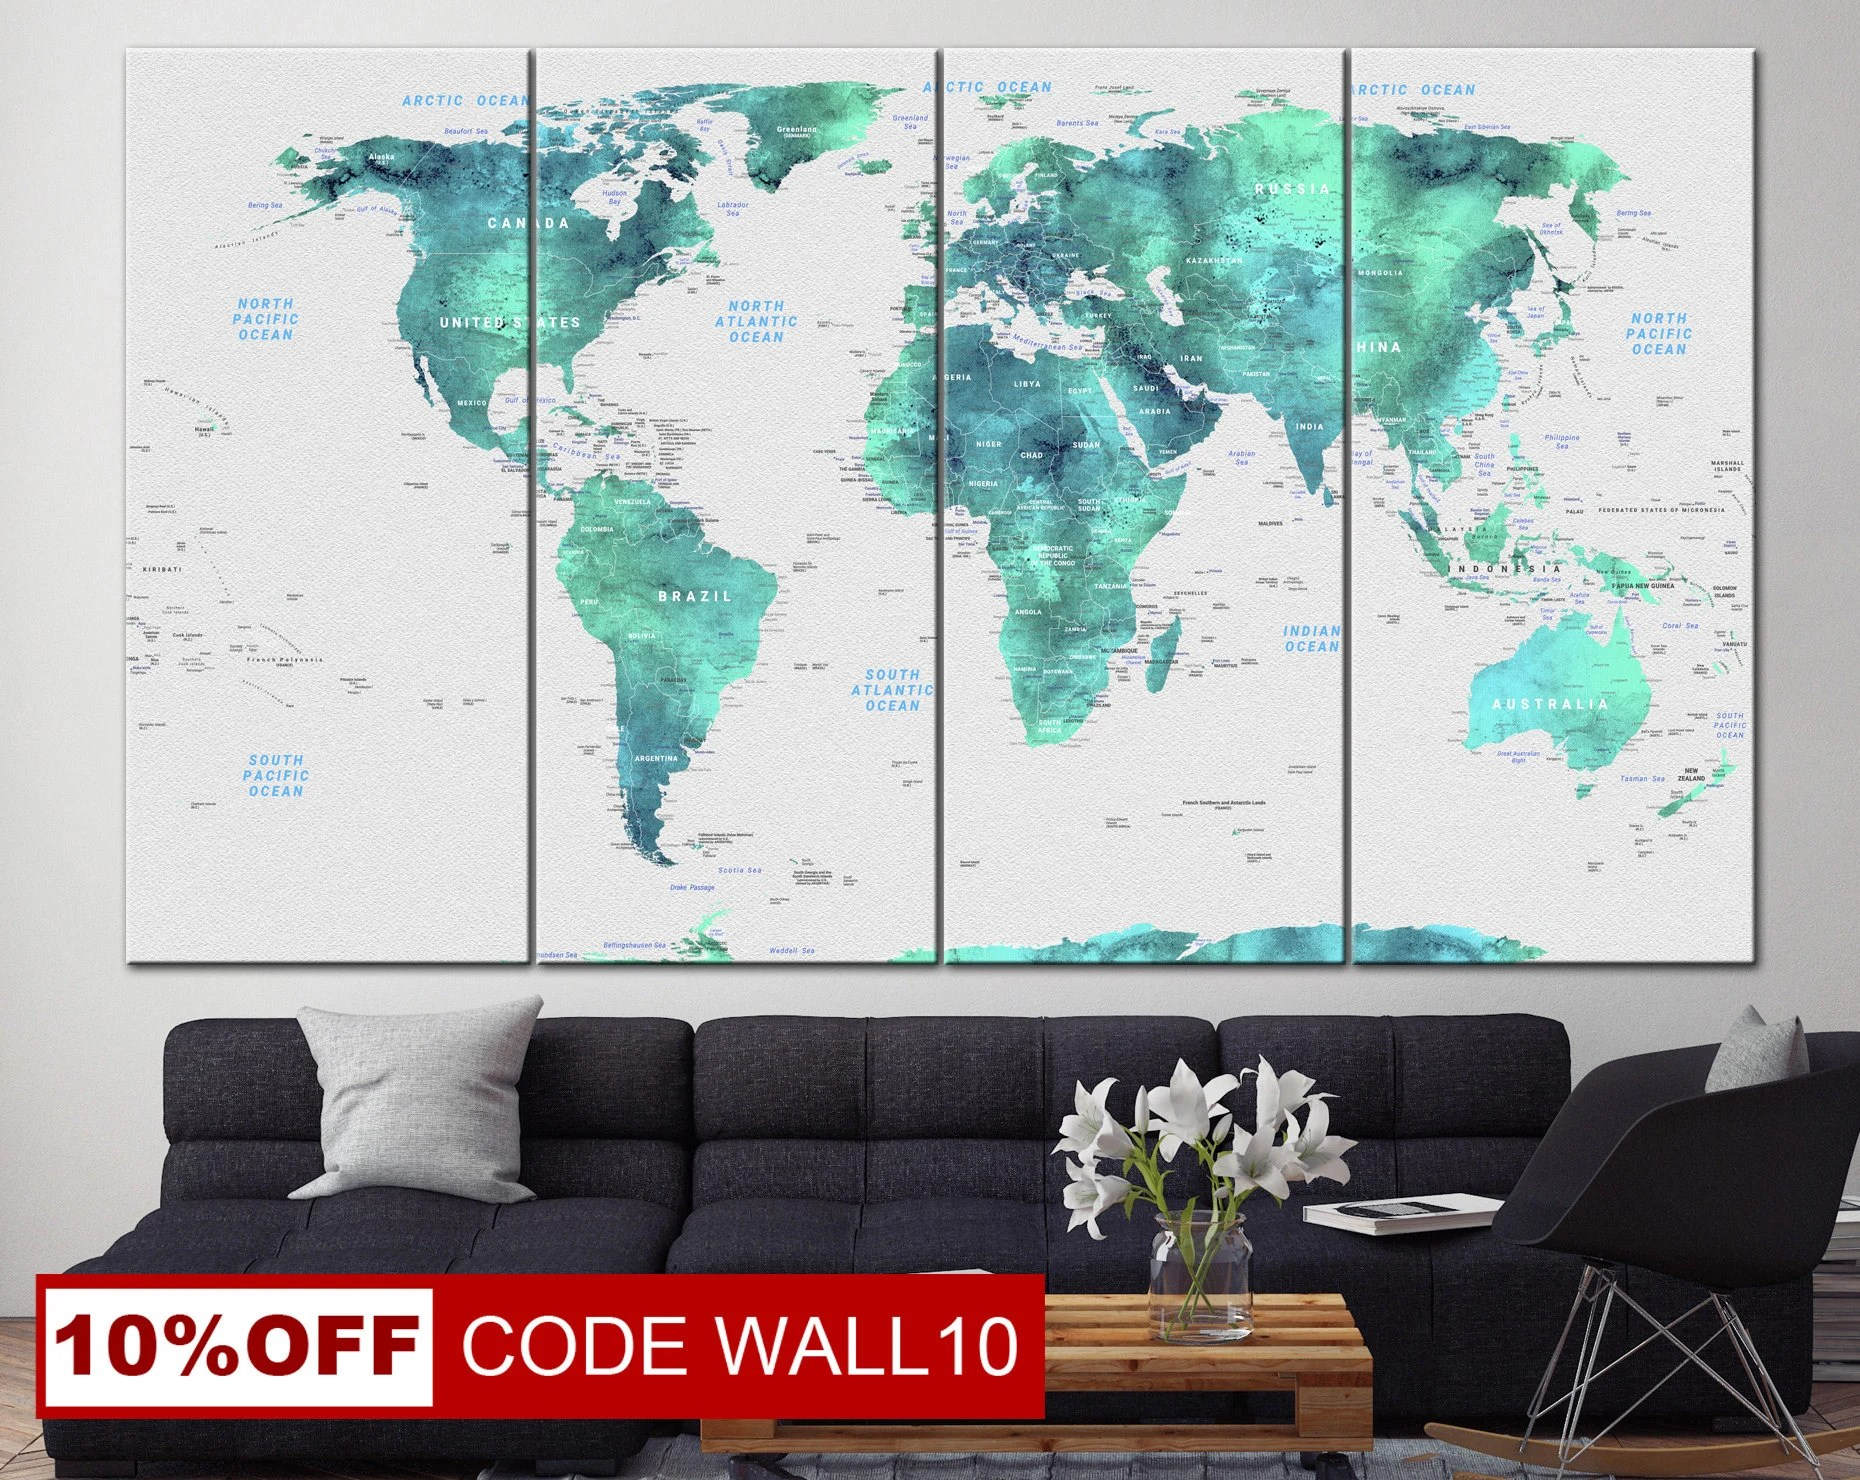 Wall Prints For Living Room Australia Large Wall Prints Map White Print Turquoise Art Light Blue Art Photo Print Map Set Print Map Picture Frameless Wall Map Living Room Wall Art